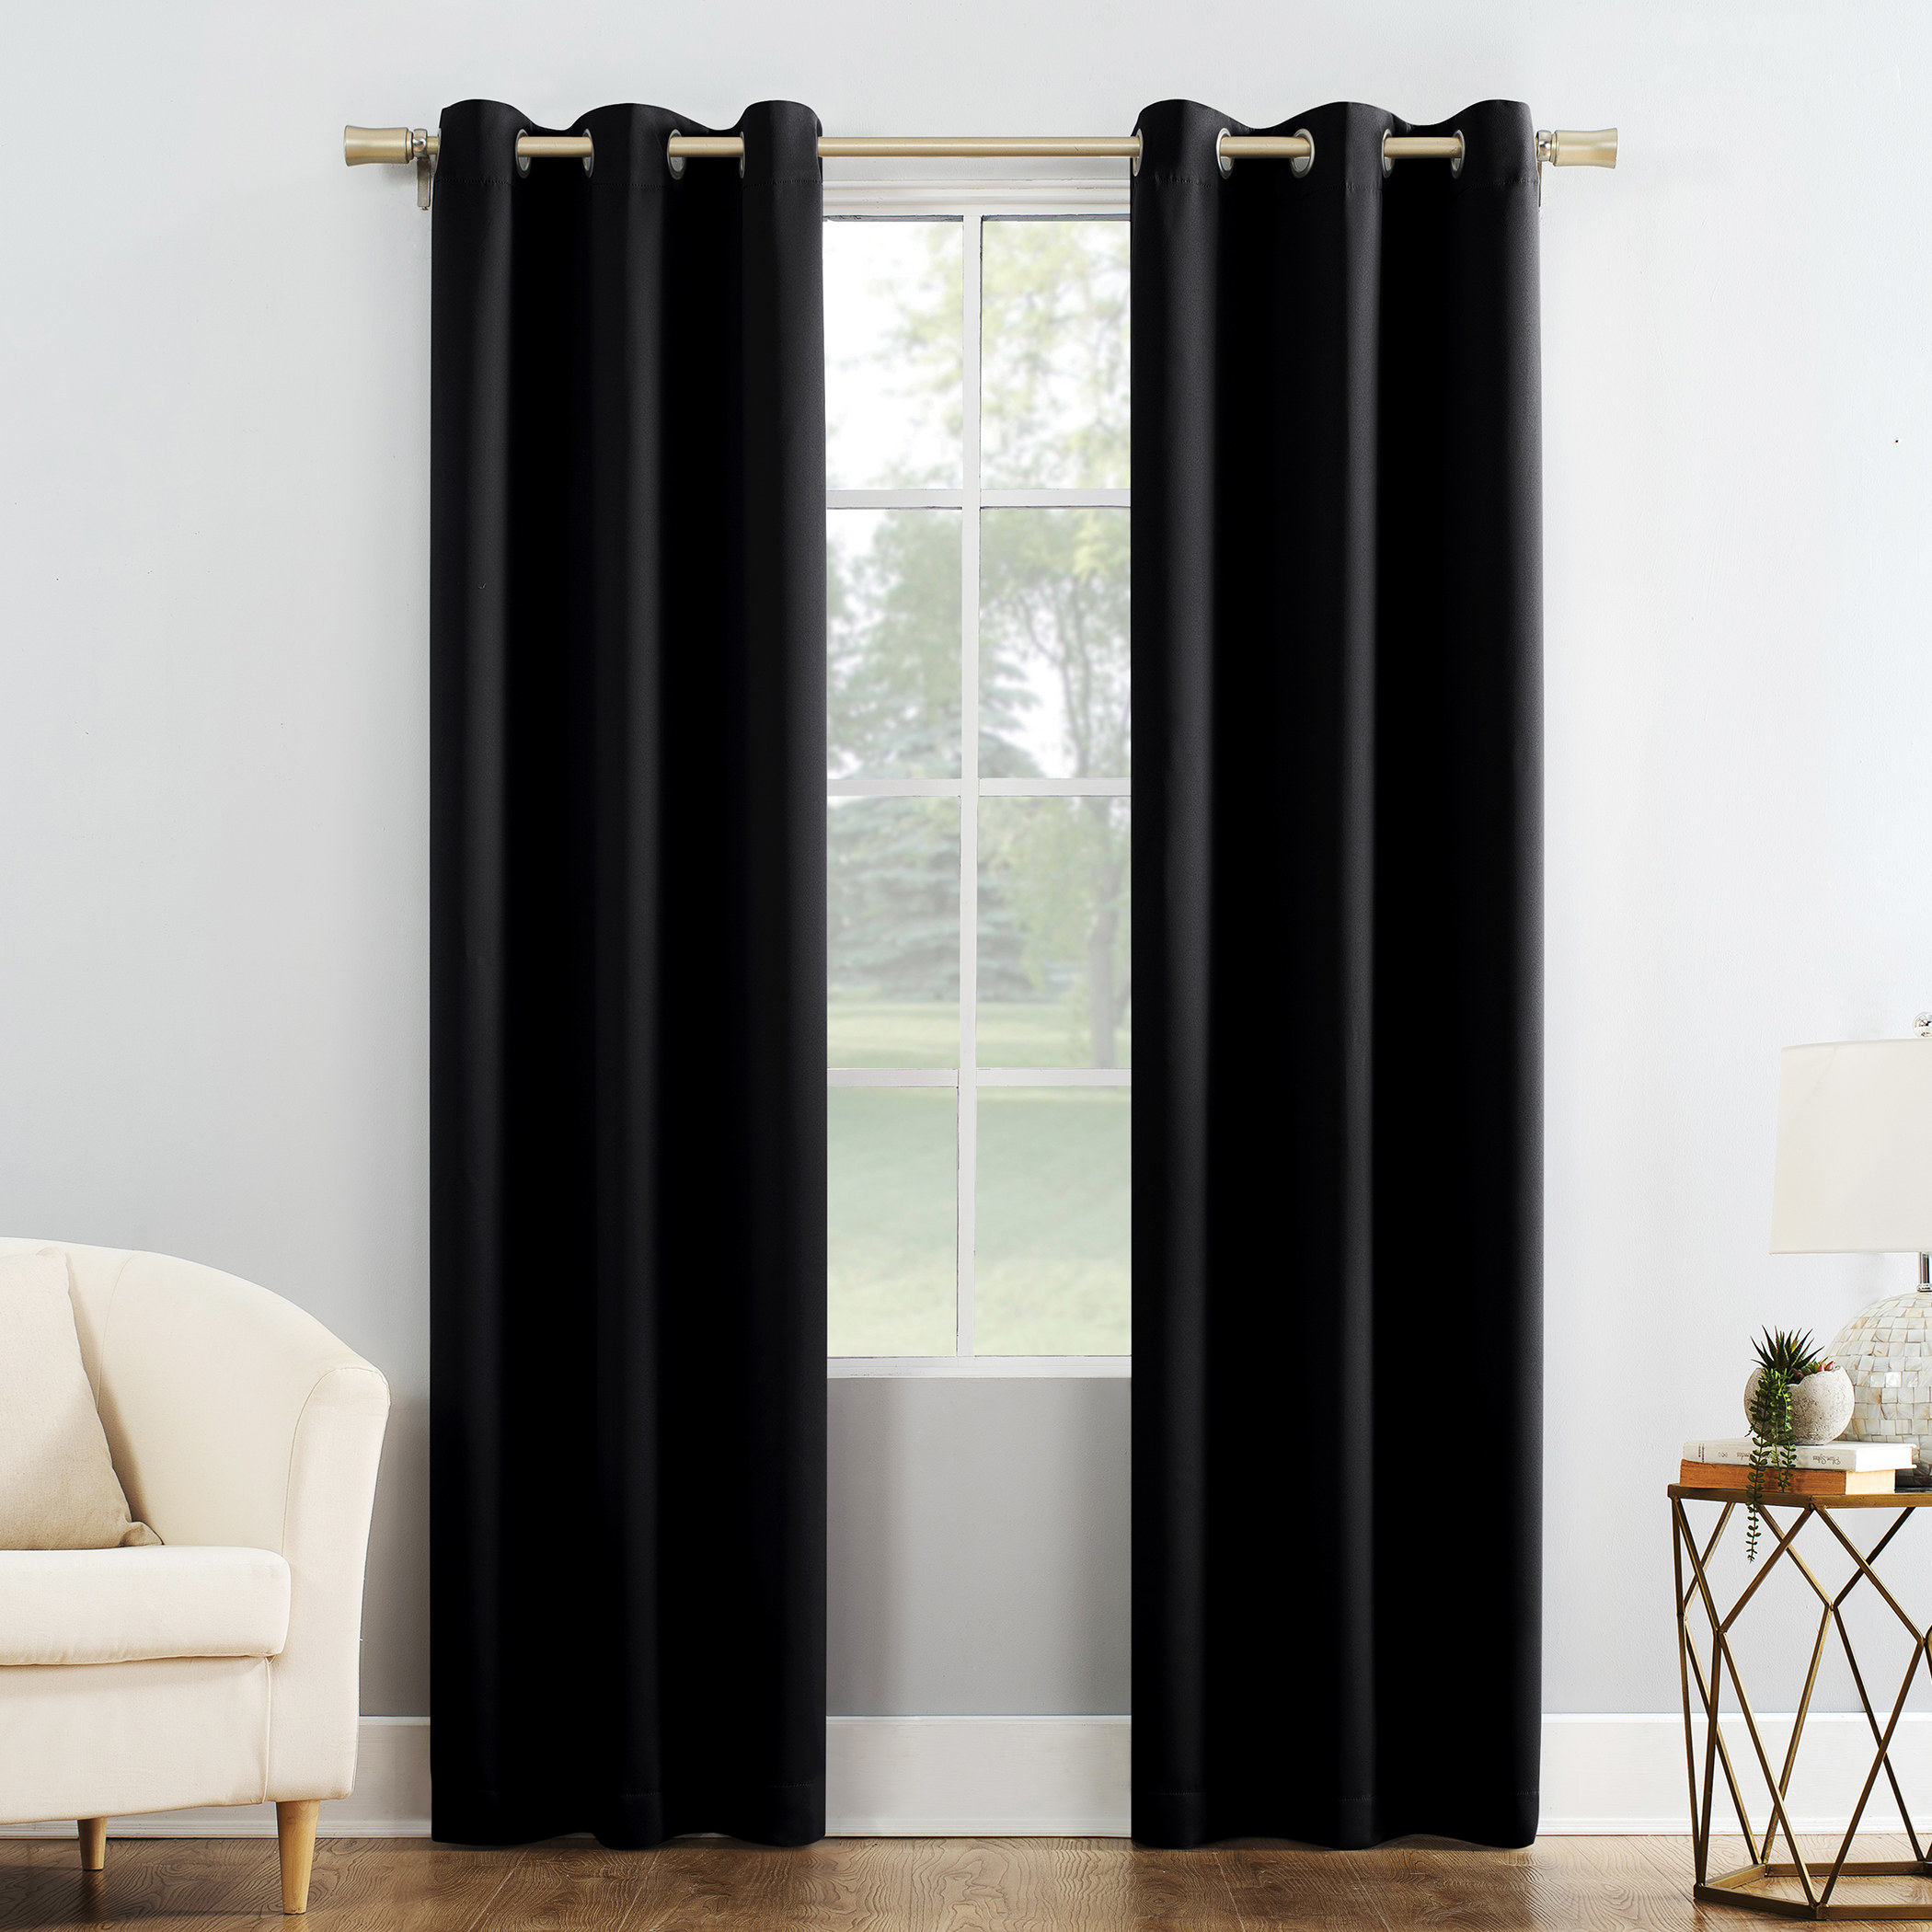 black colored blackout curtains